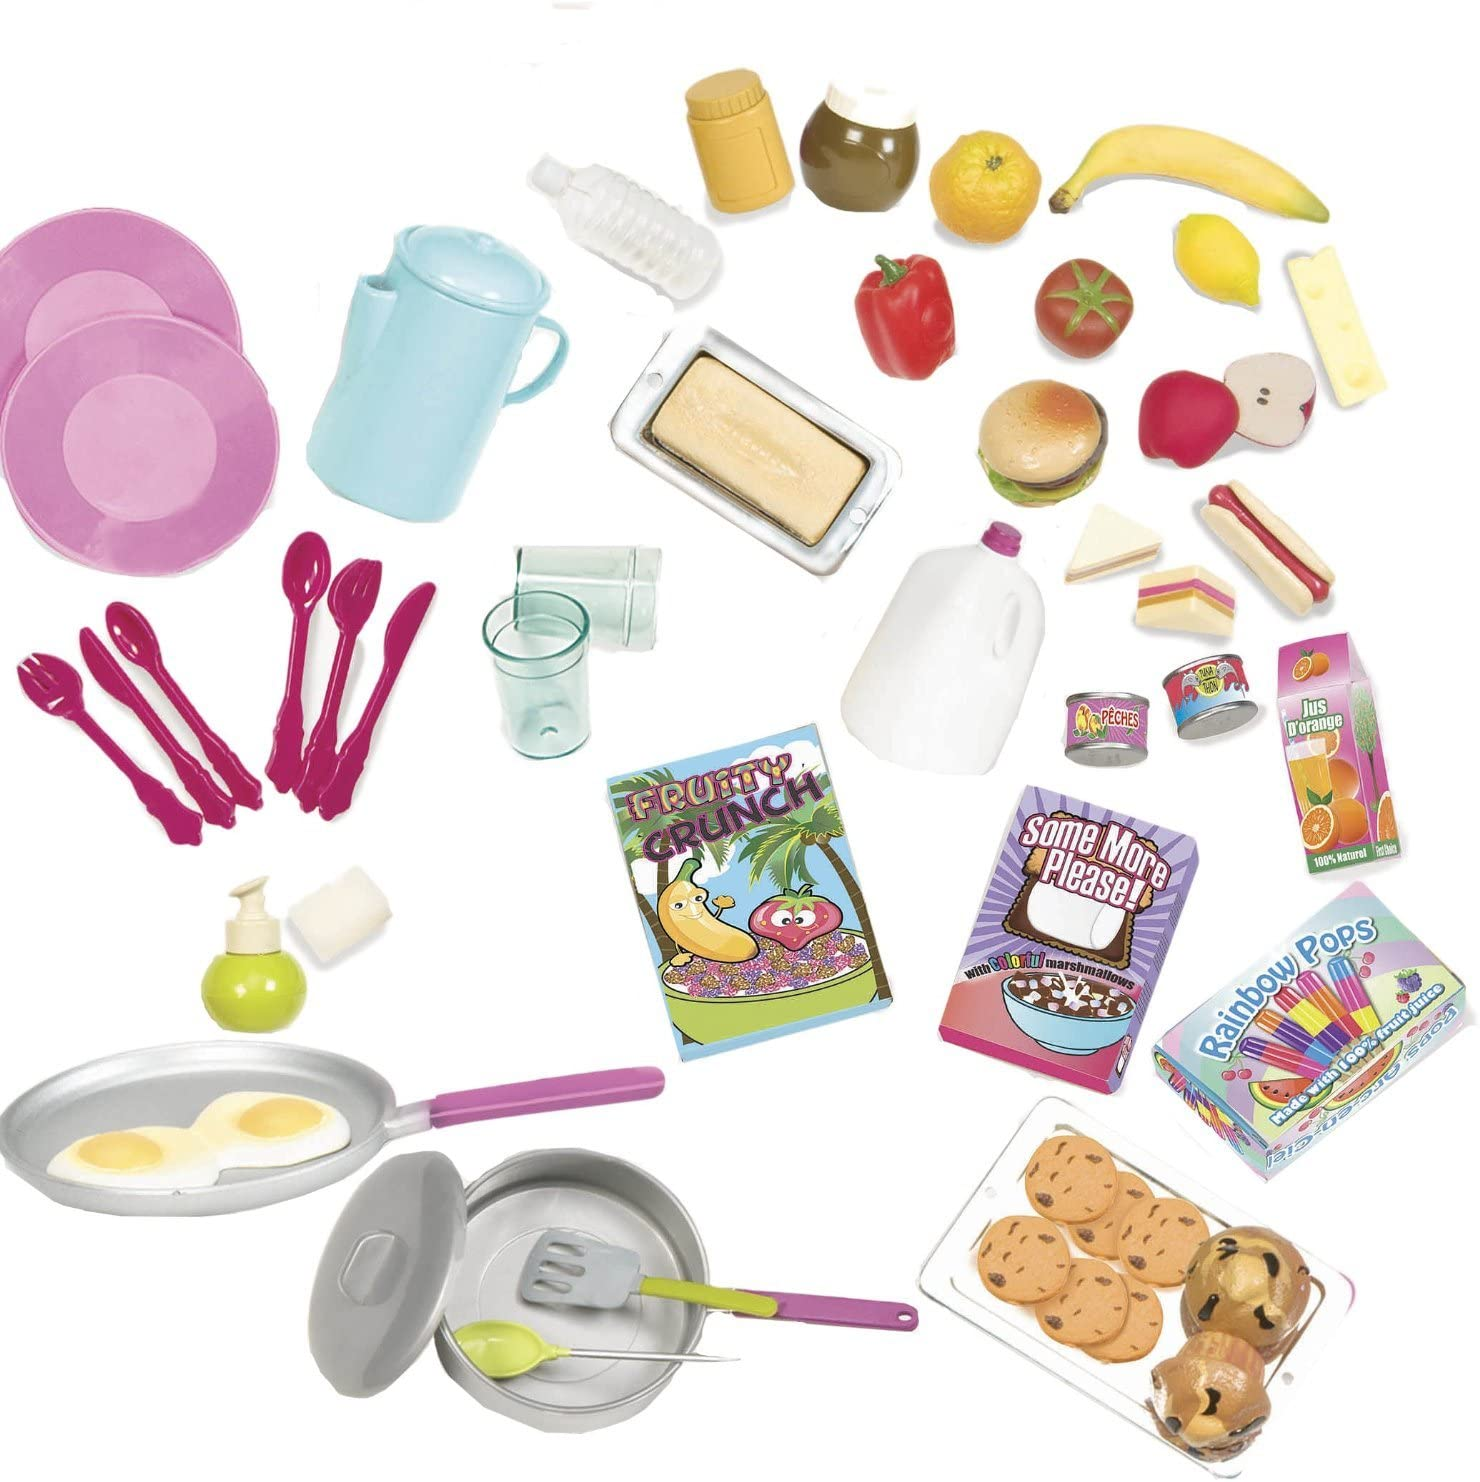 Our Generation R.V. Seeing You Camper Accessory Set (R.V. not included)